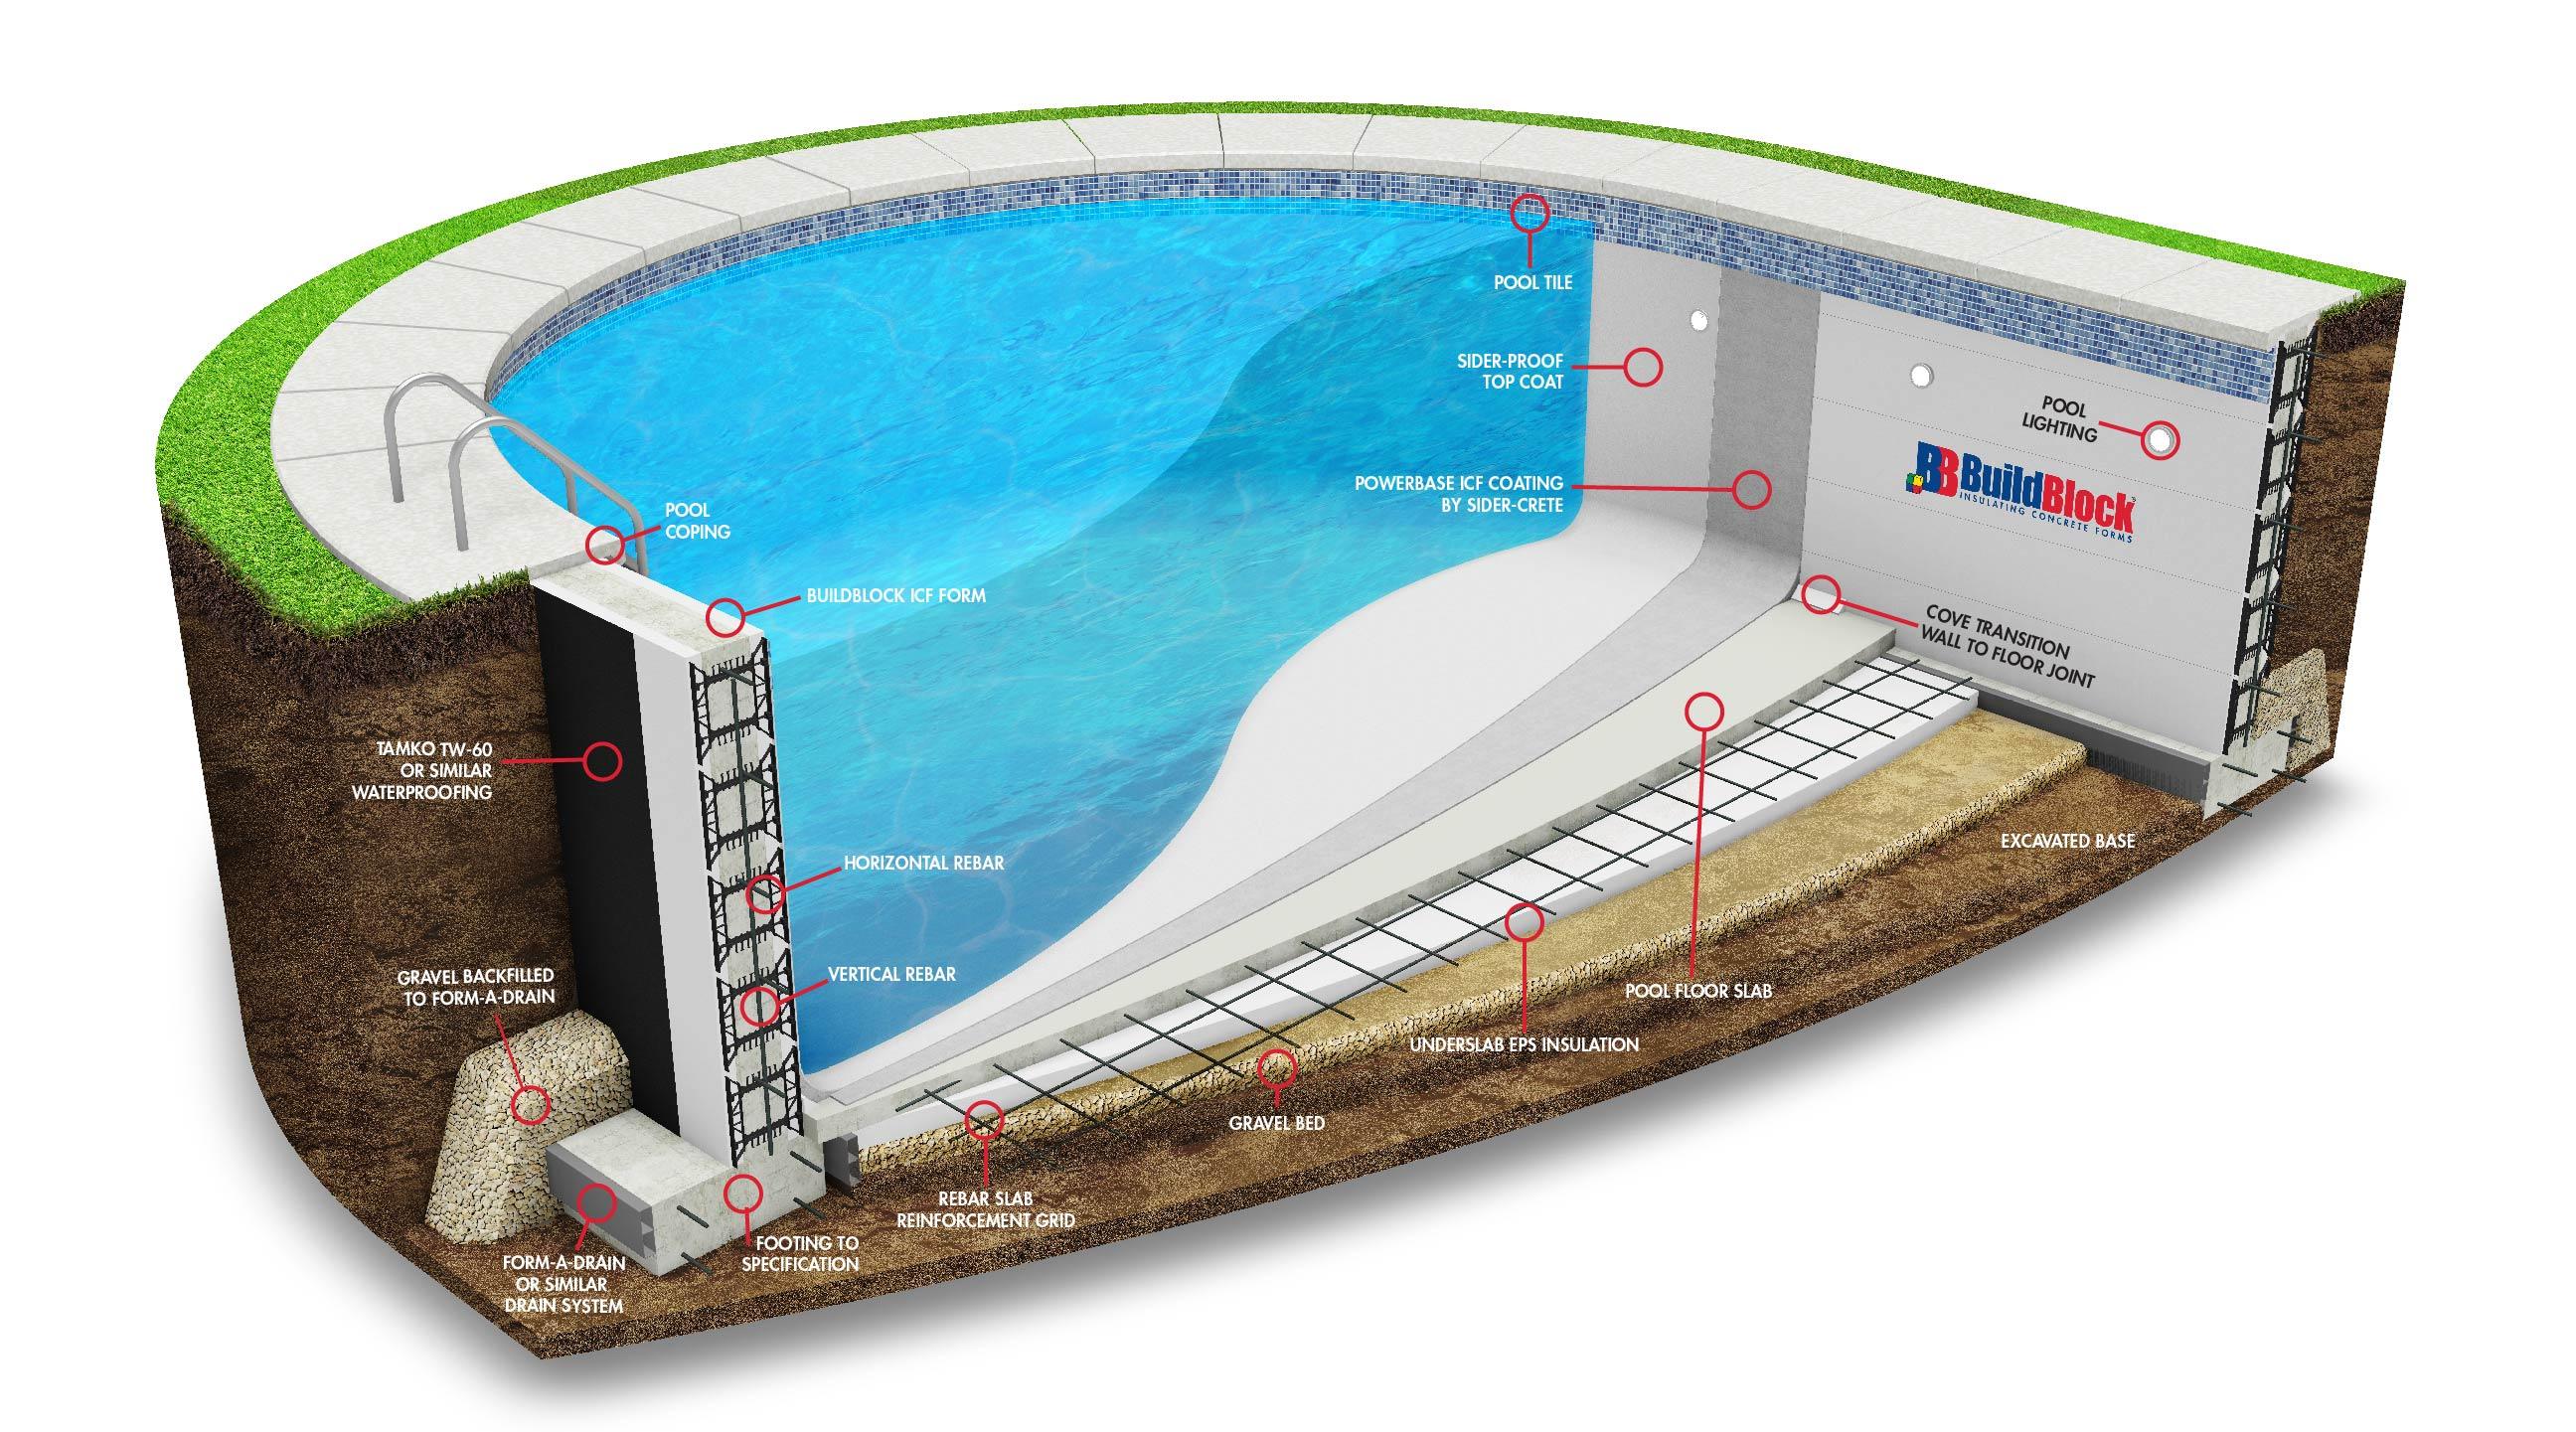 Buildblock Icf Swimming Pools Getting The Most Splash For